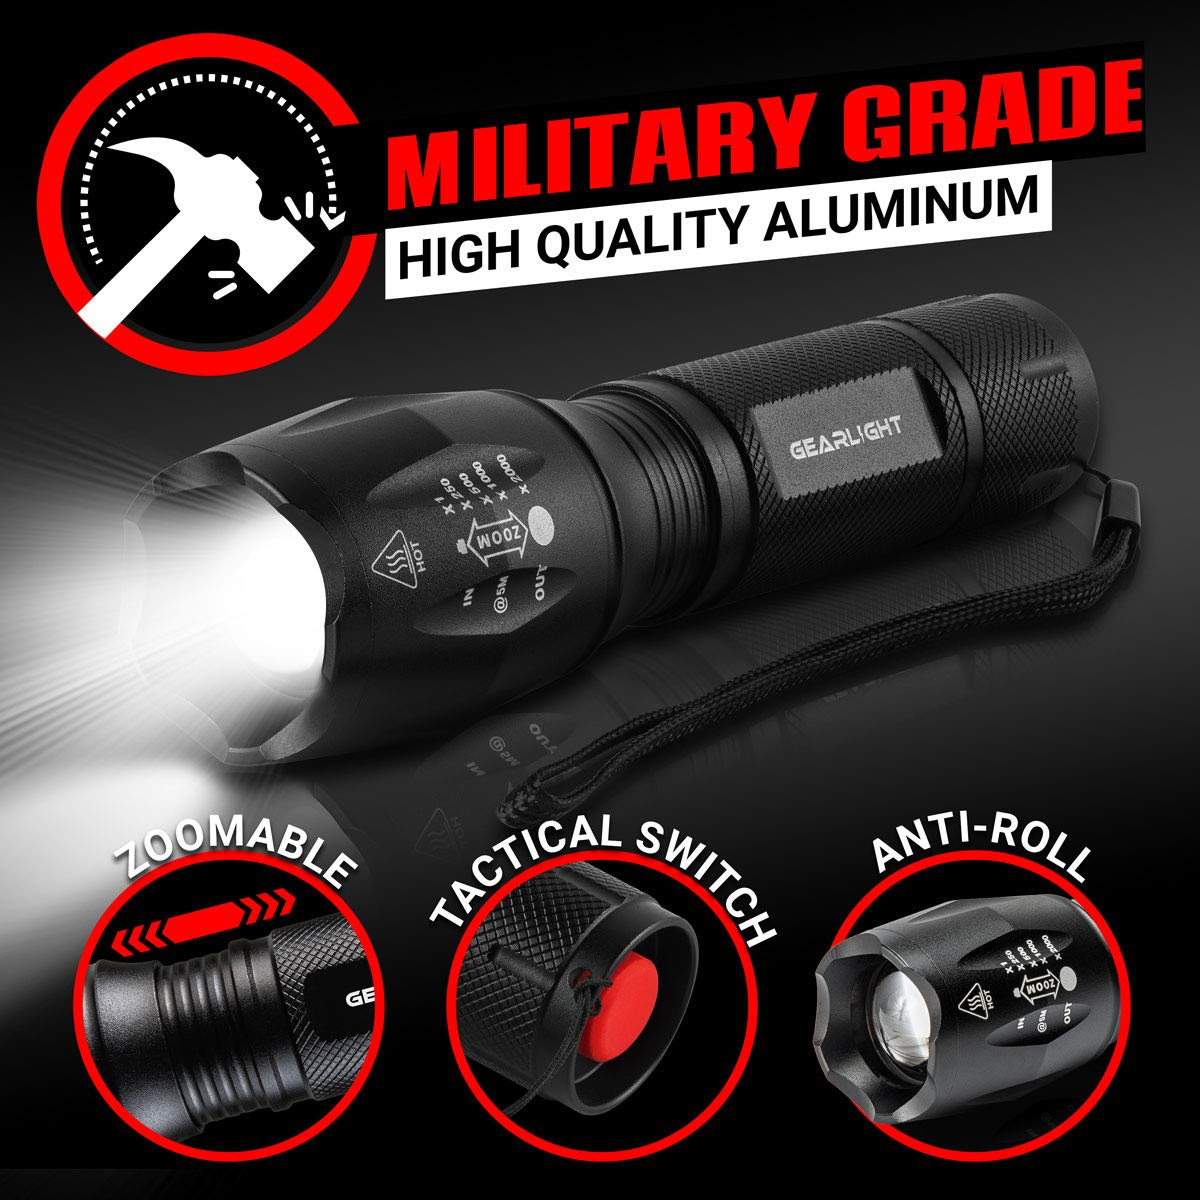 GearLight LED Tactical Flashlight S1000 [2 Pack] - High Lumen, Zoomable, 5 Modes, Water Resistant Light - Camping Accessories, Outdoor Gear, Emergency Flashlights